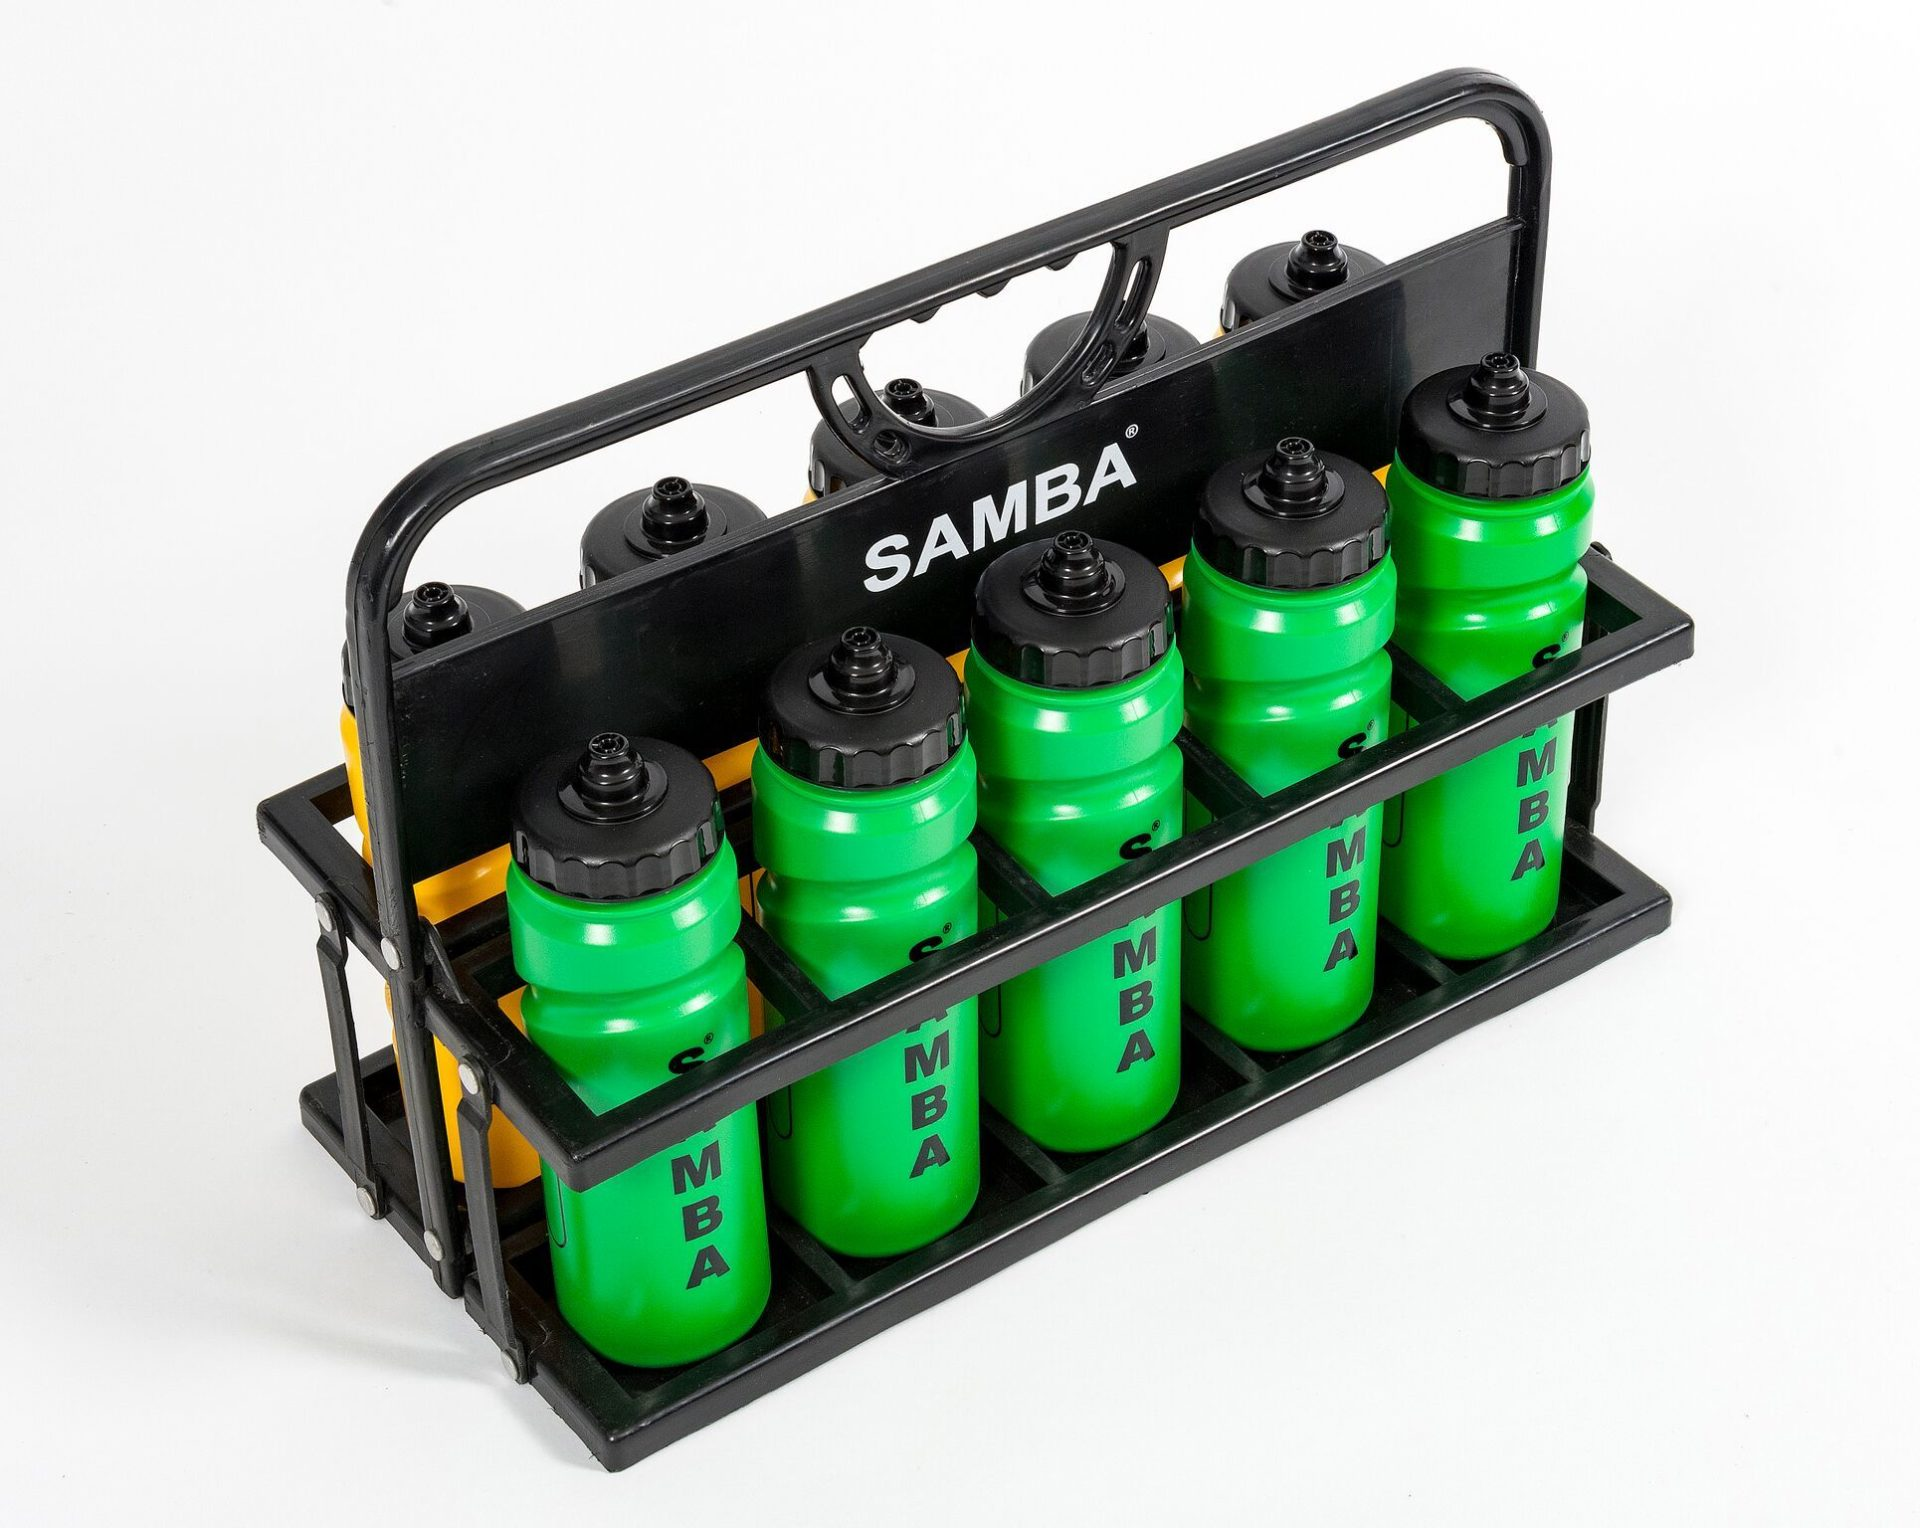 Samba Folding bottle carrier